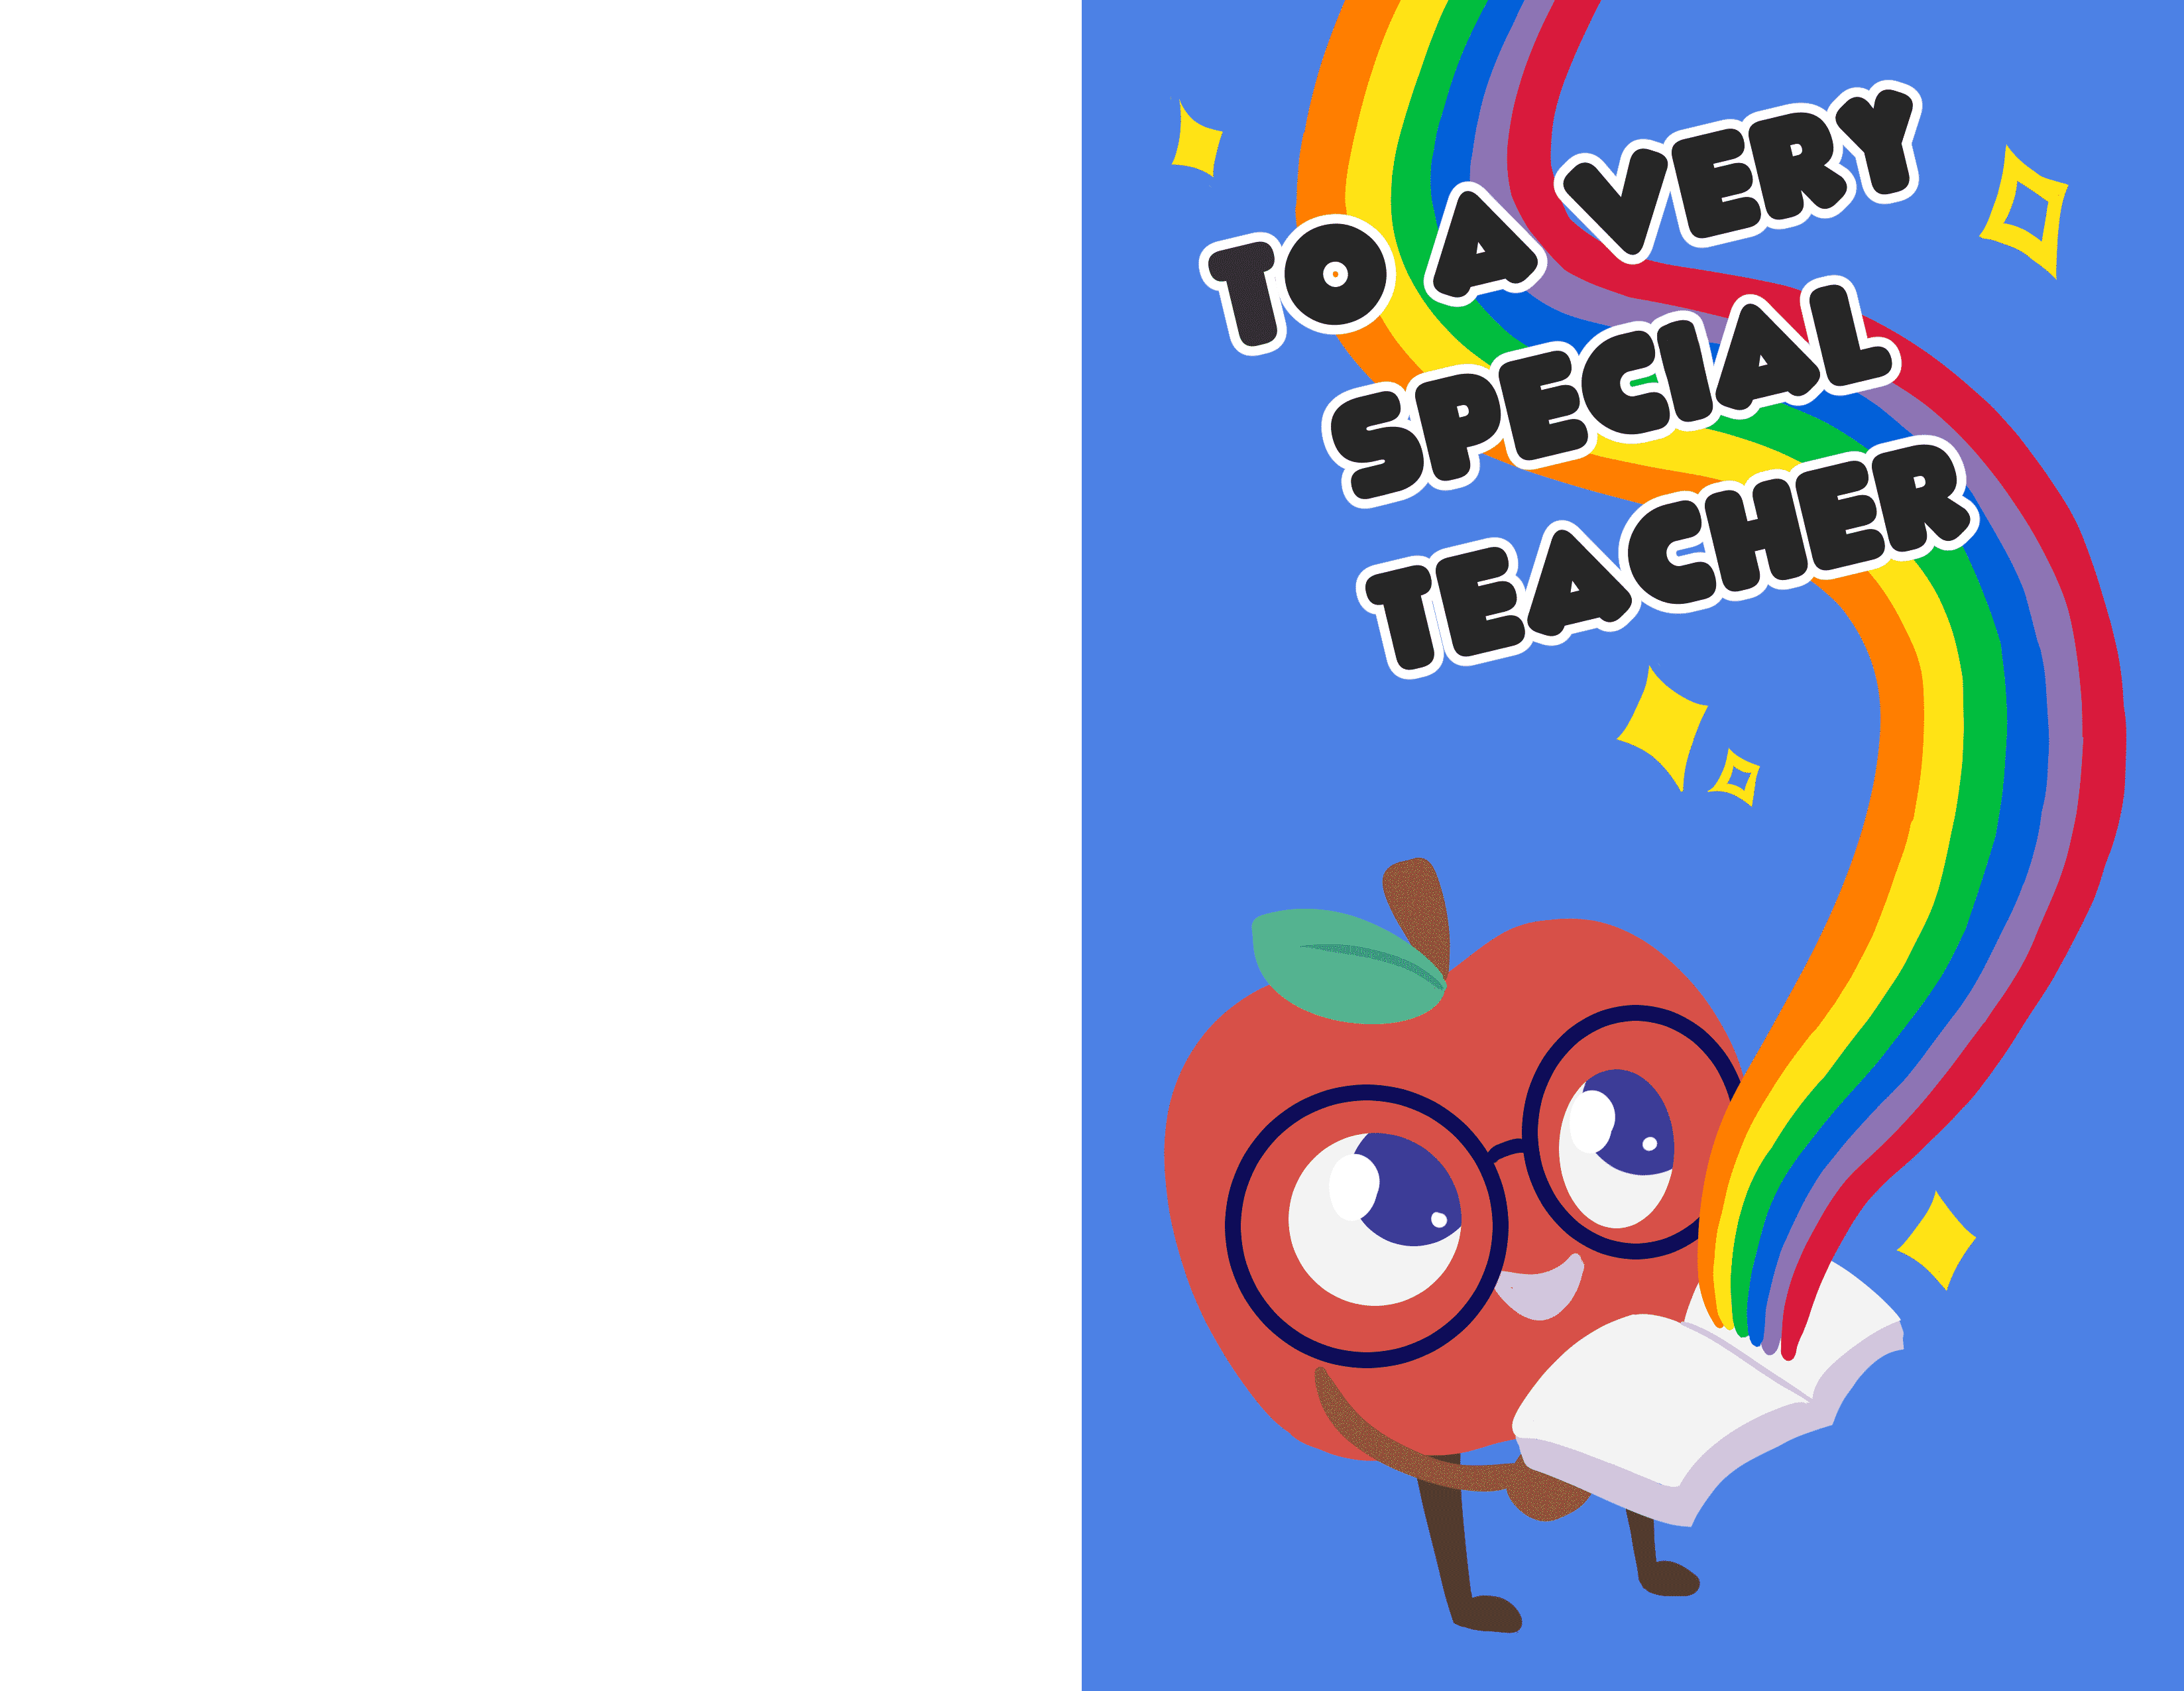 Free printable Teacher Appreciation Week cards aren't just for traditional teachers; this card would work well for a librarian too.